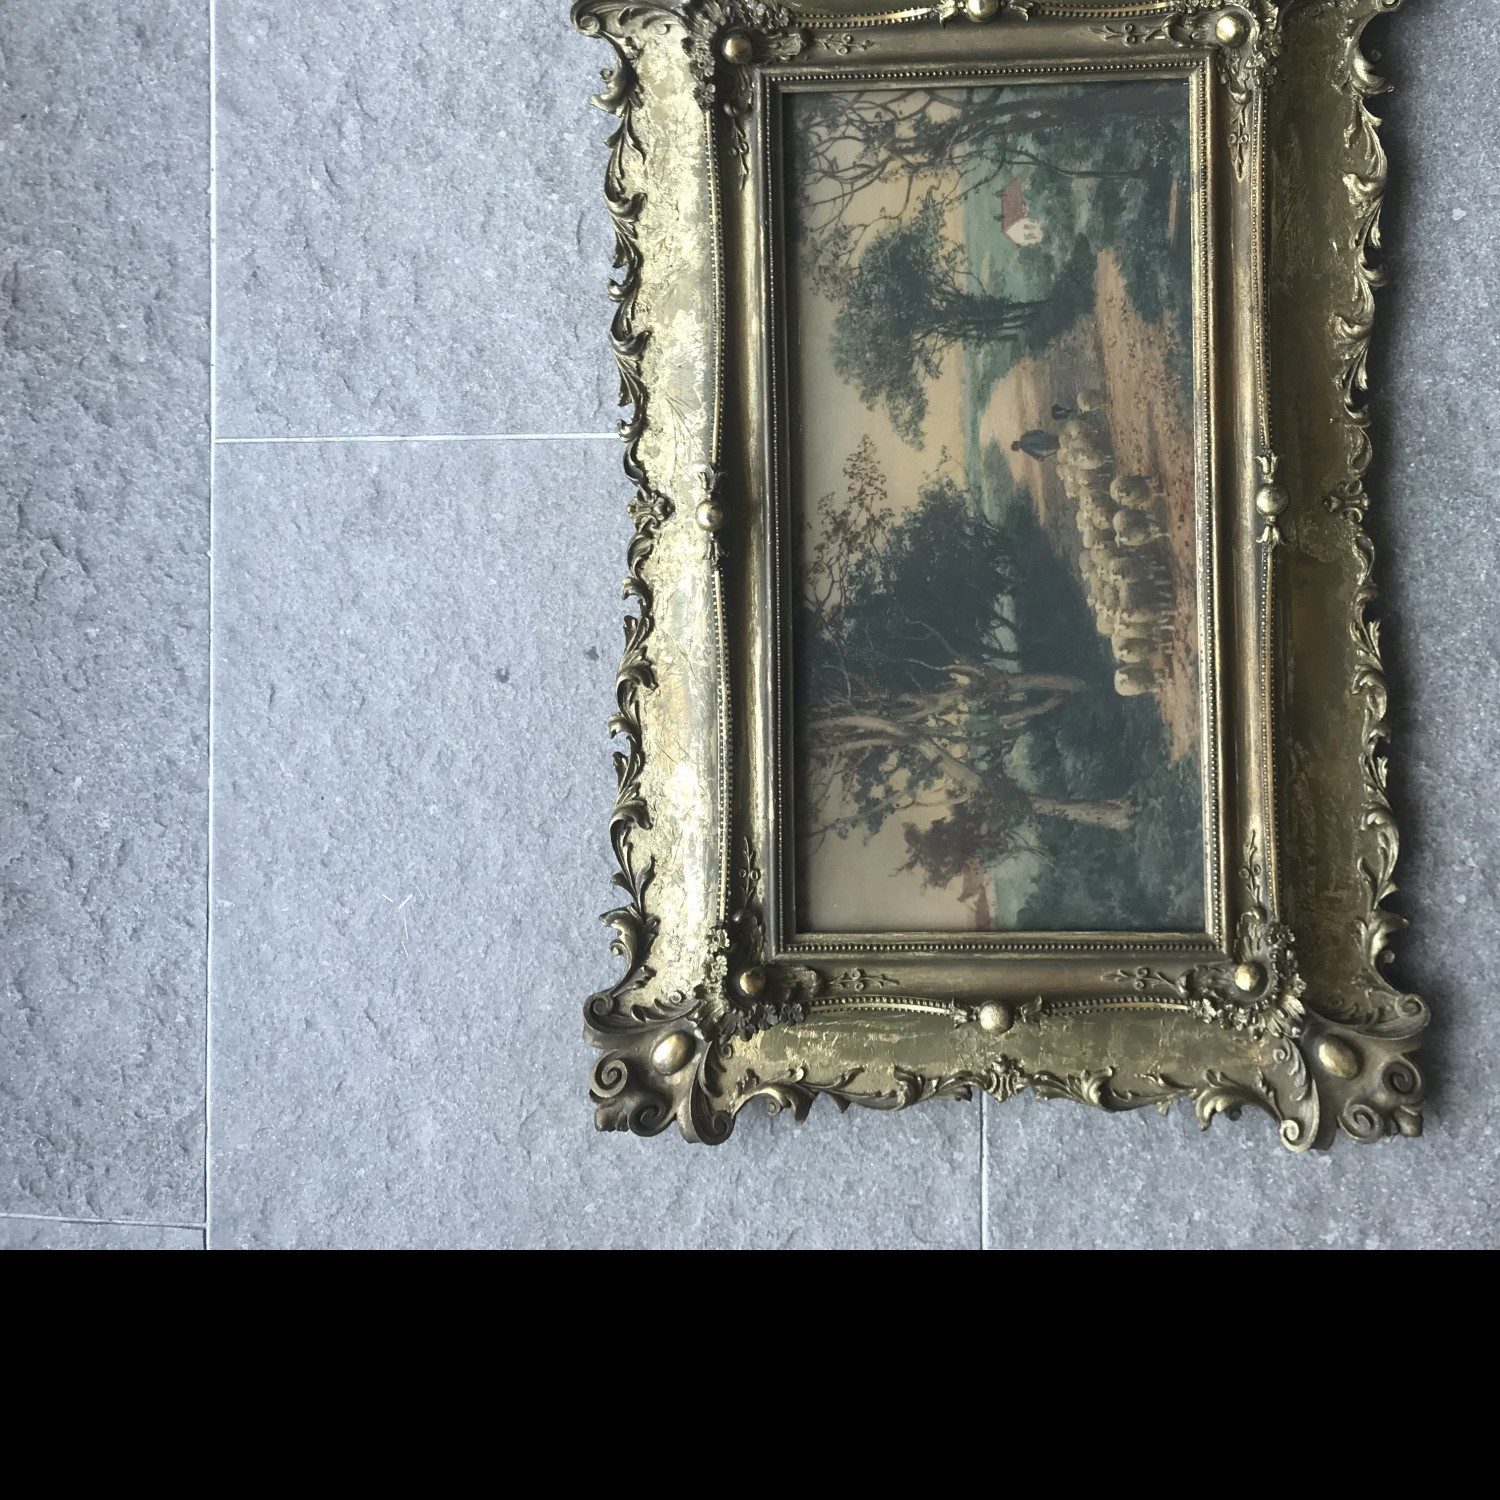 small painting of a man and sheep in frame